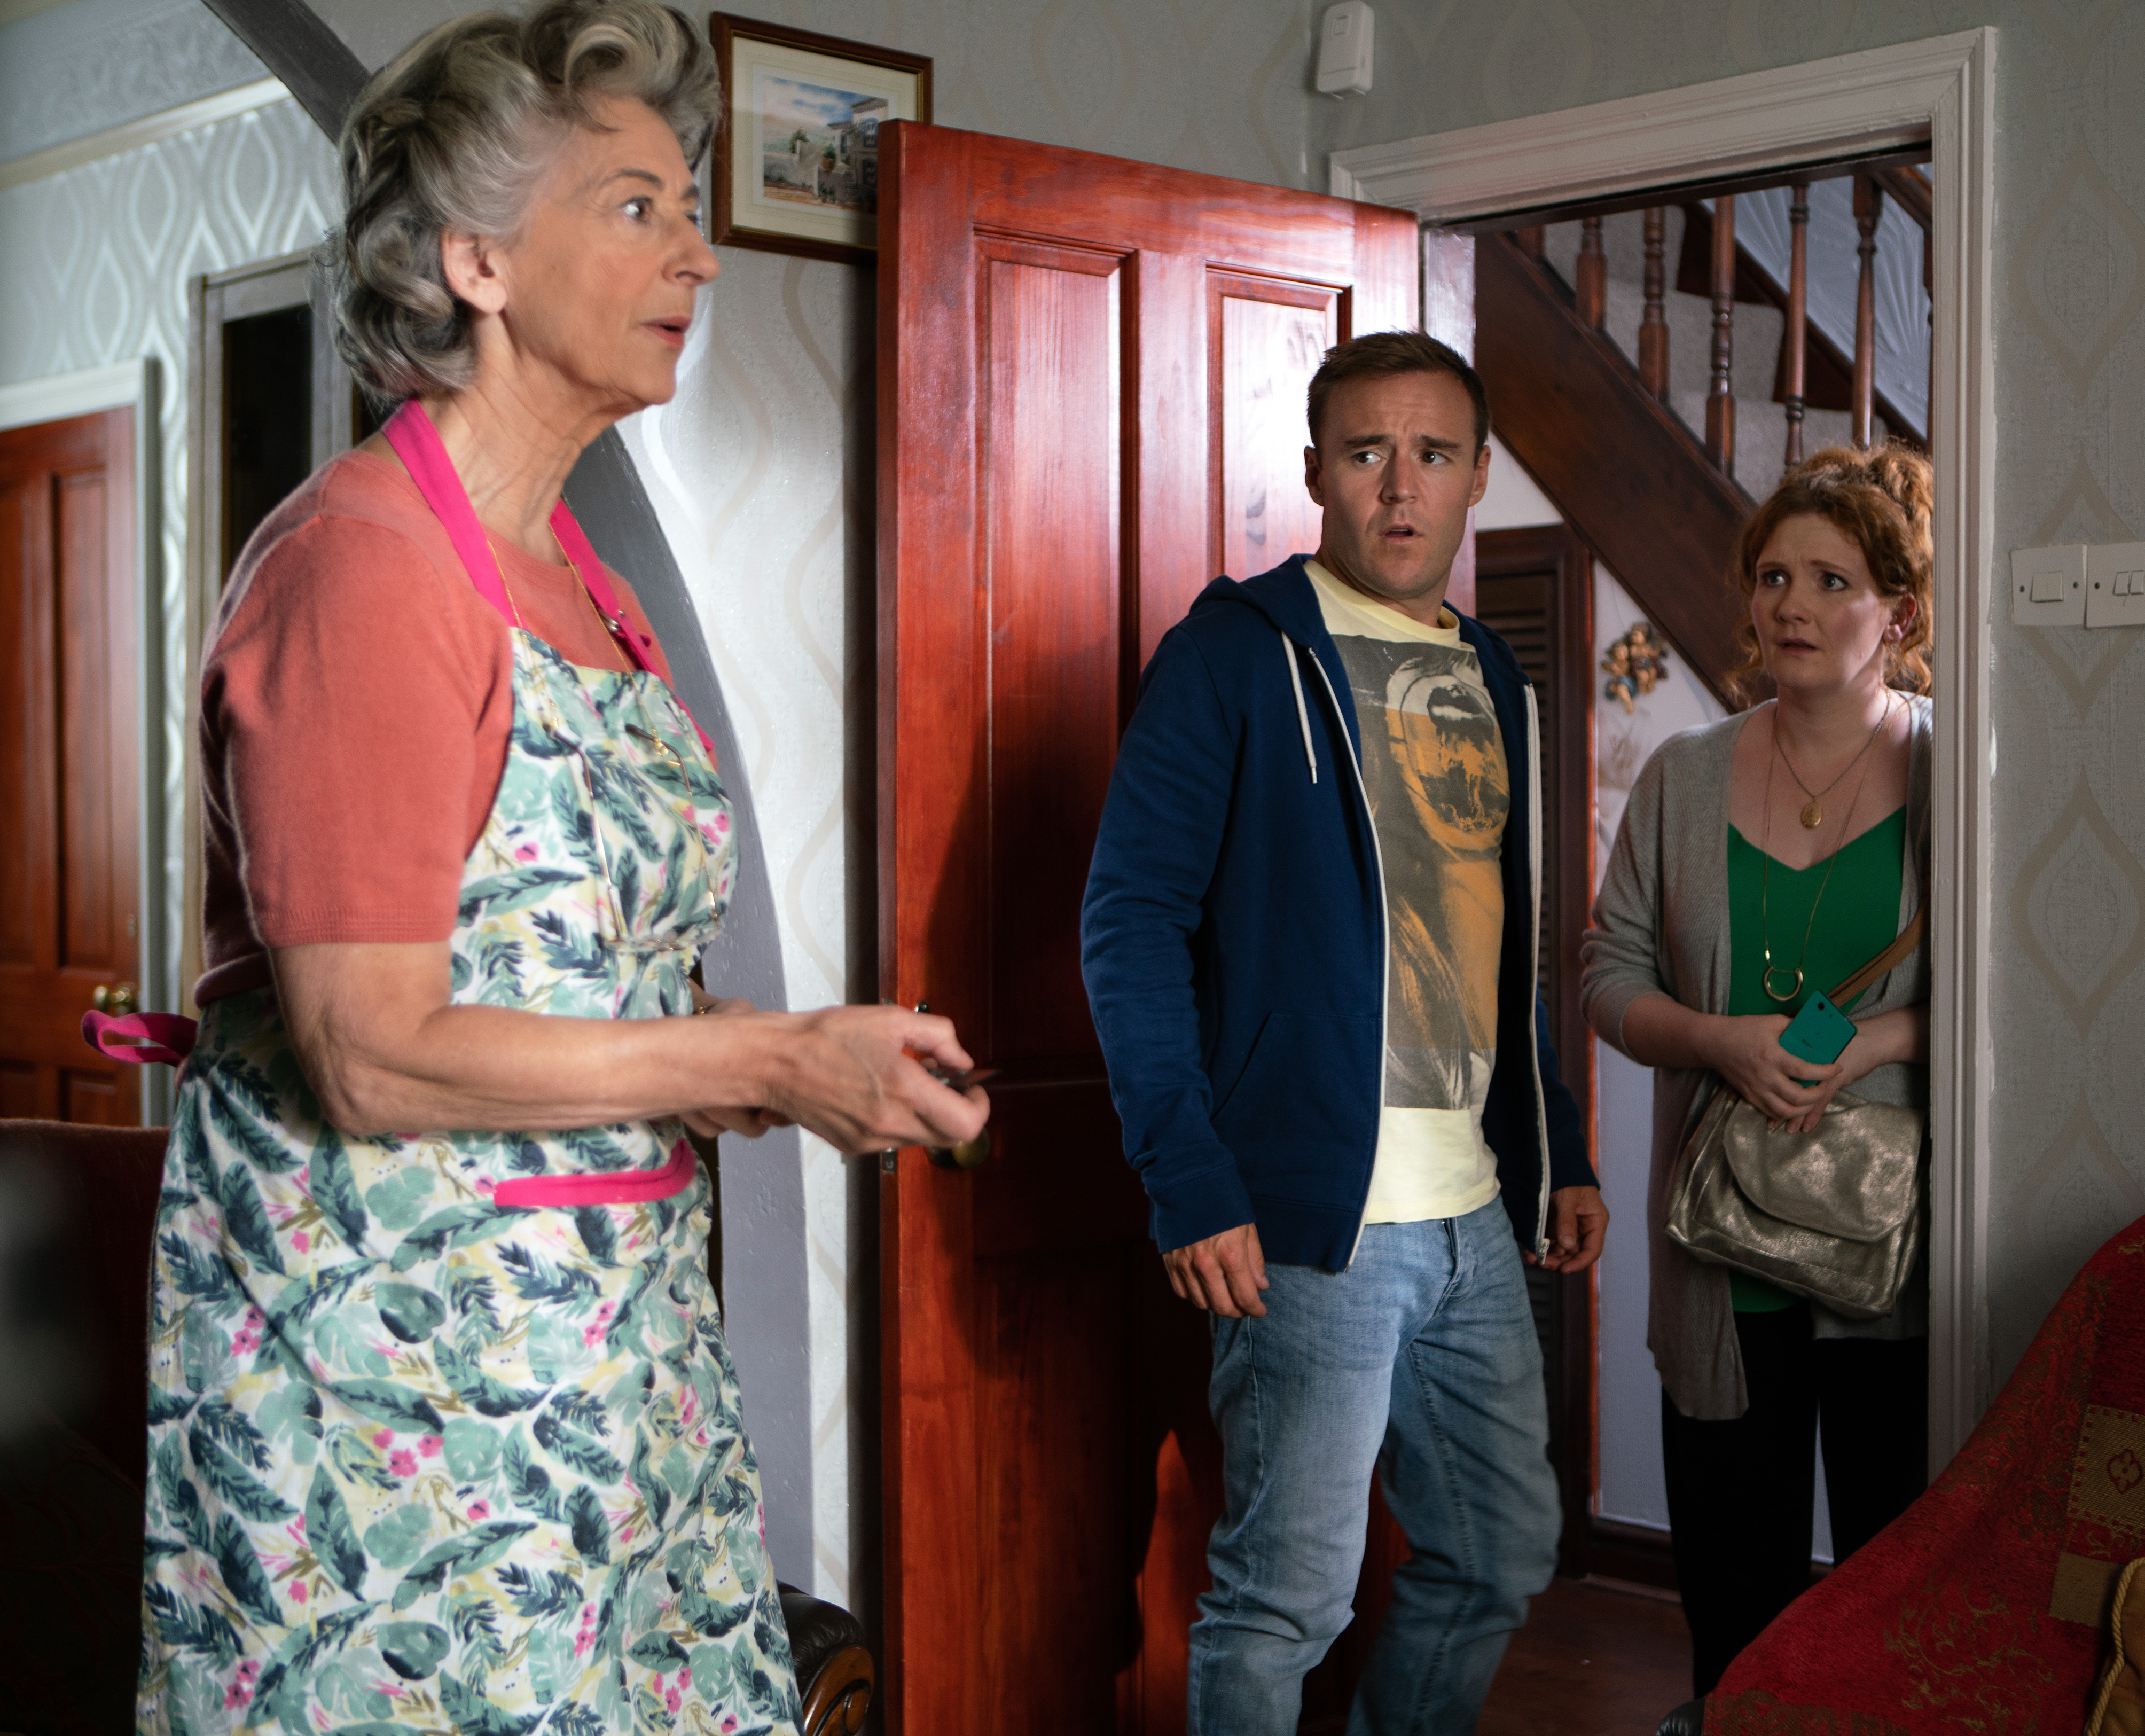 Coronation Street spoilers: Tyrone Dobbs meets his fearsome grandmother Evelyn as Maureen Lipman debuts